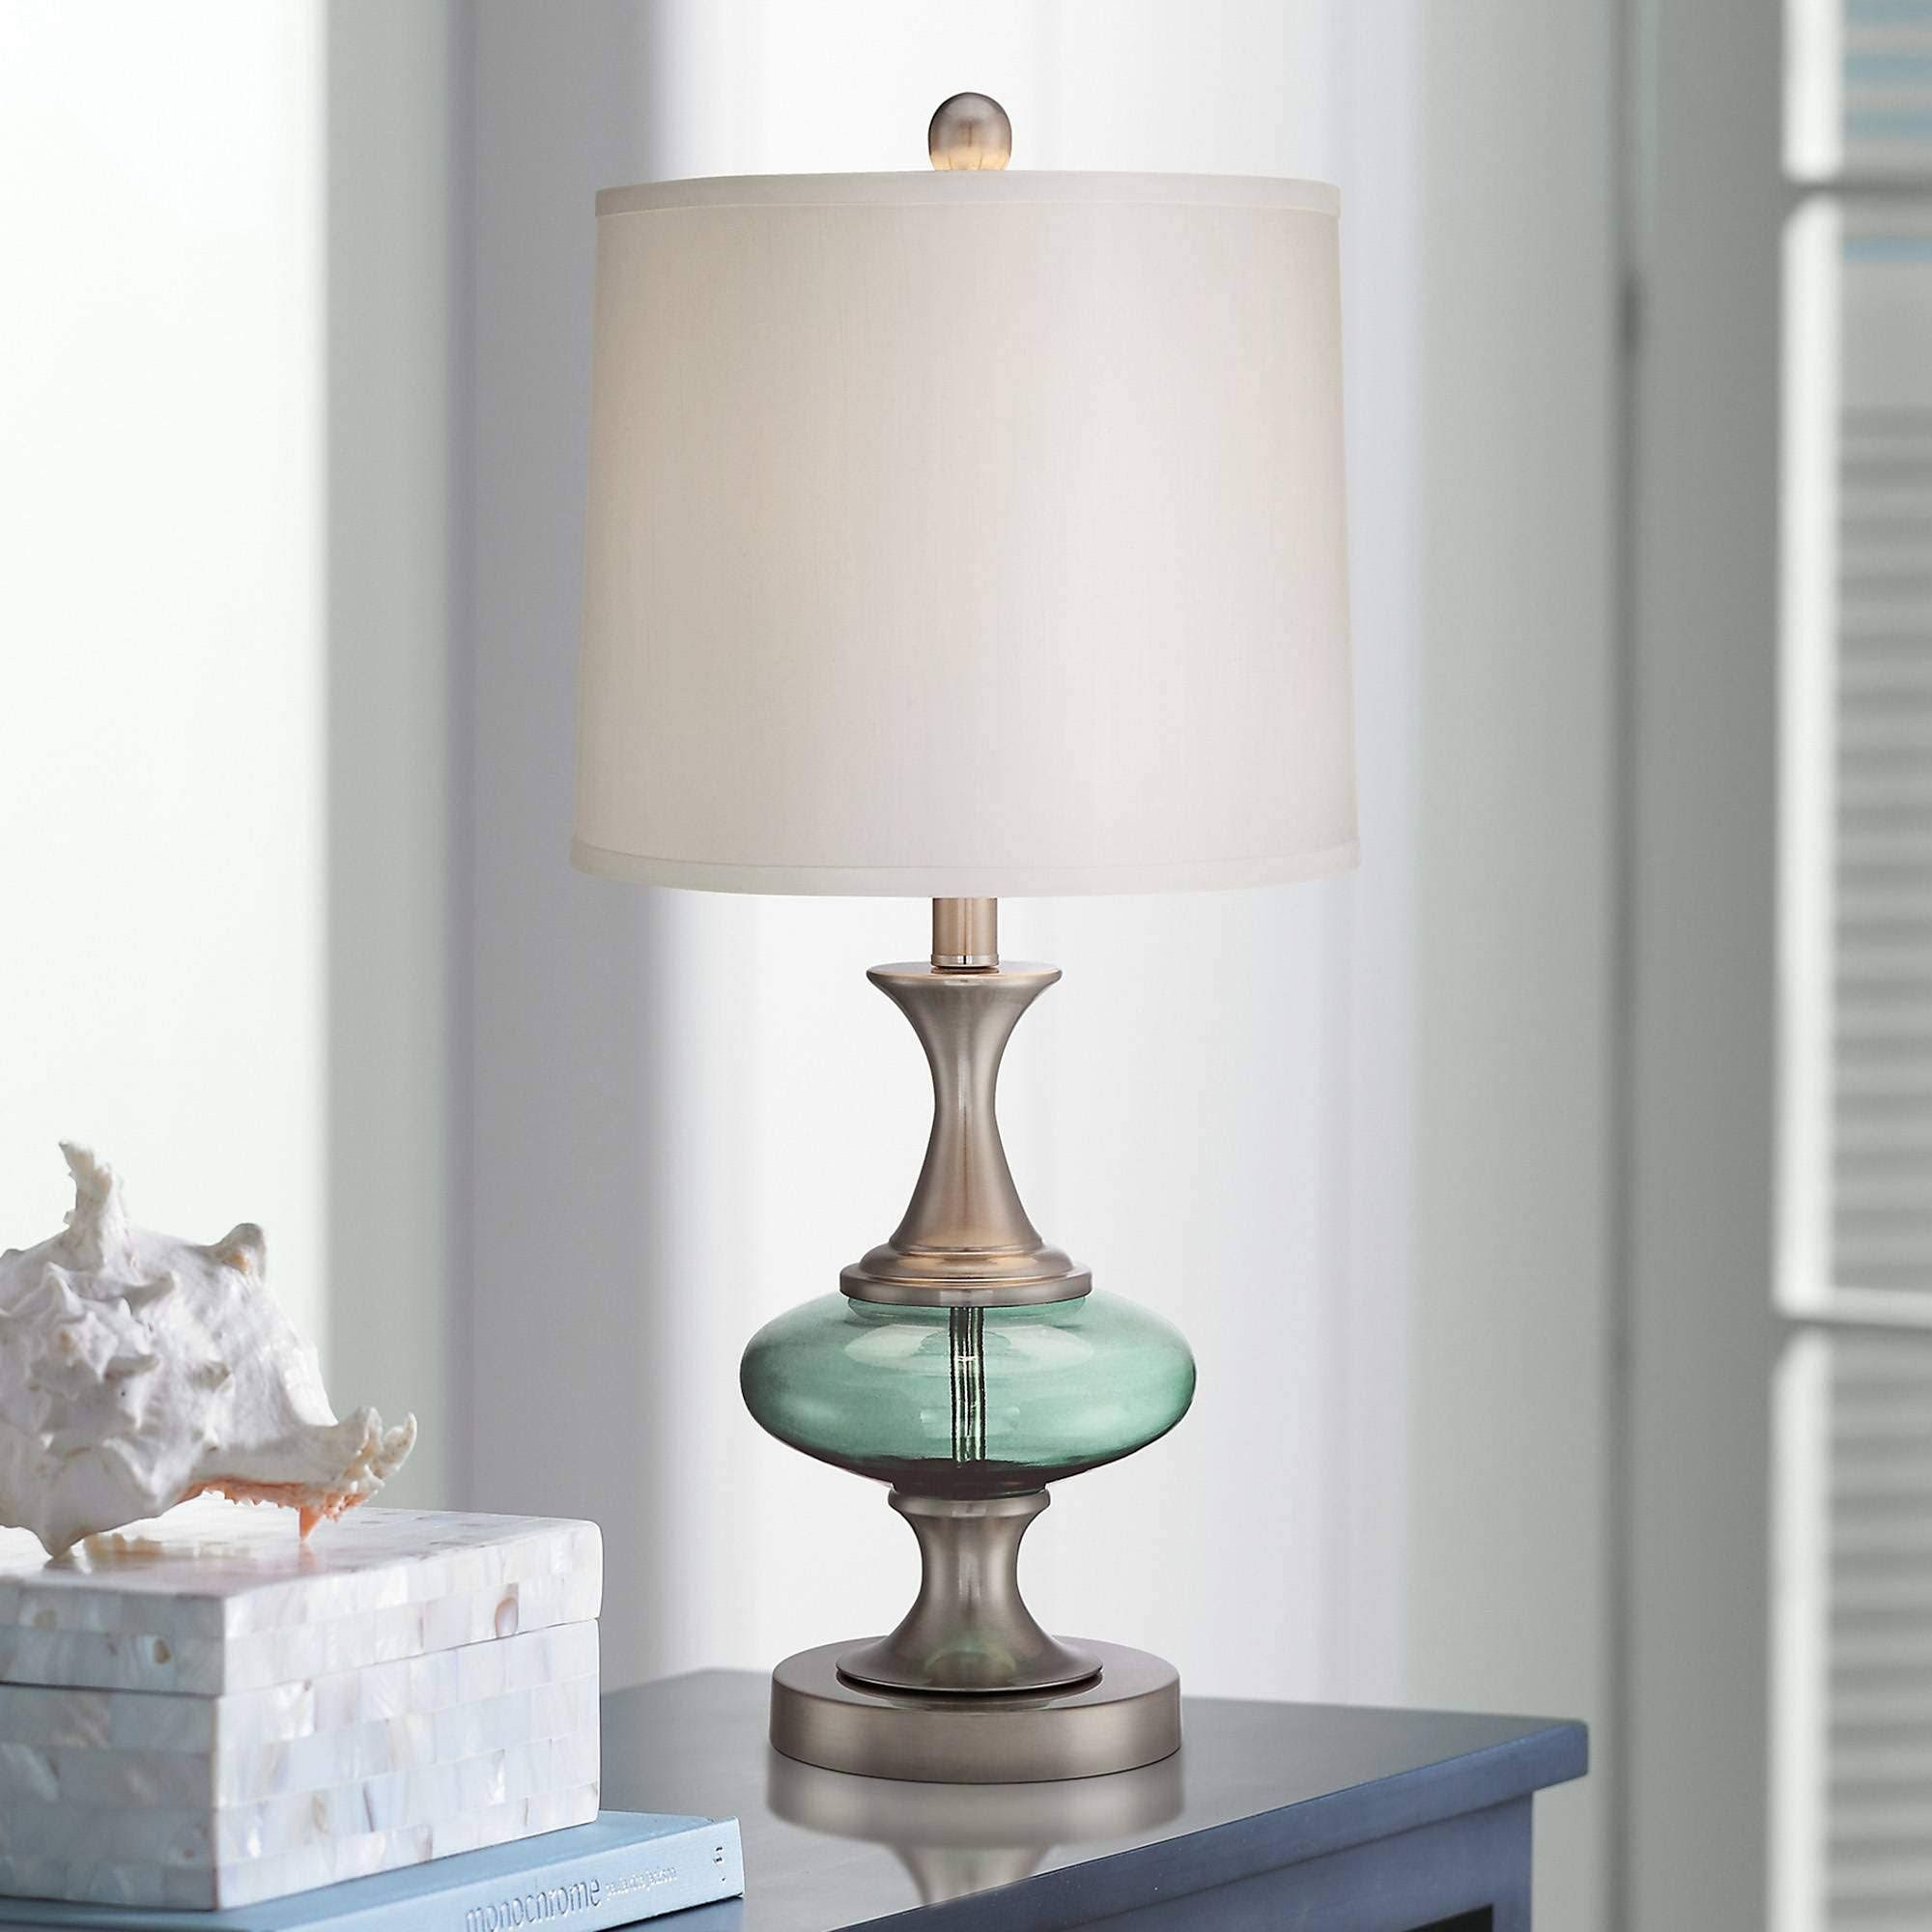 Pin By Lindsey Royal On Living Room Glass Table Lamp Contemporary Table Lamps Table Lamps Living Room